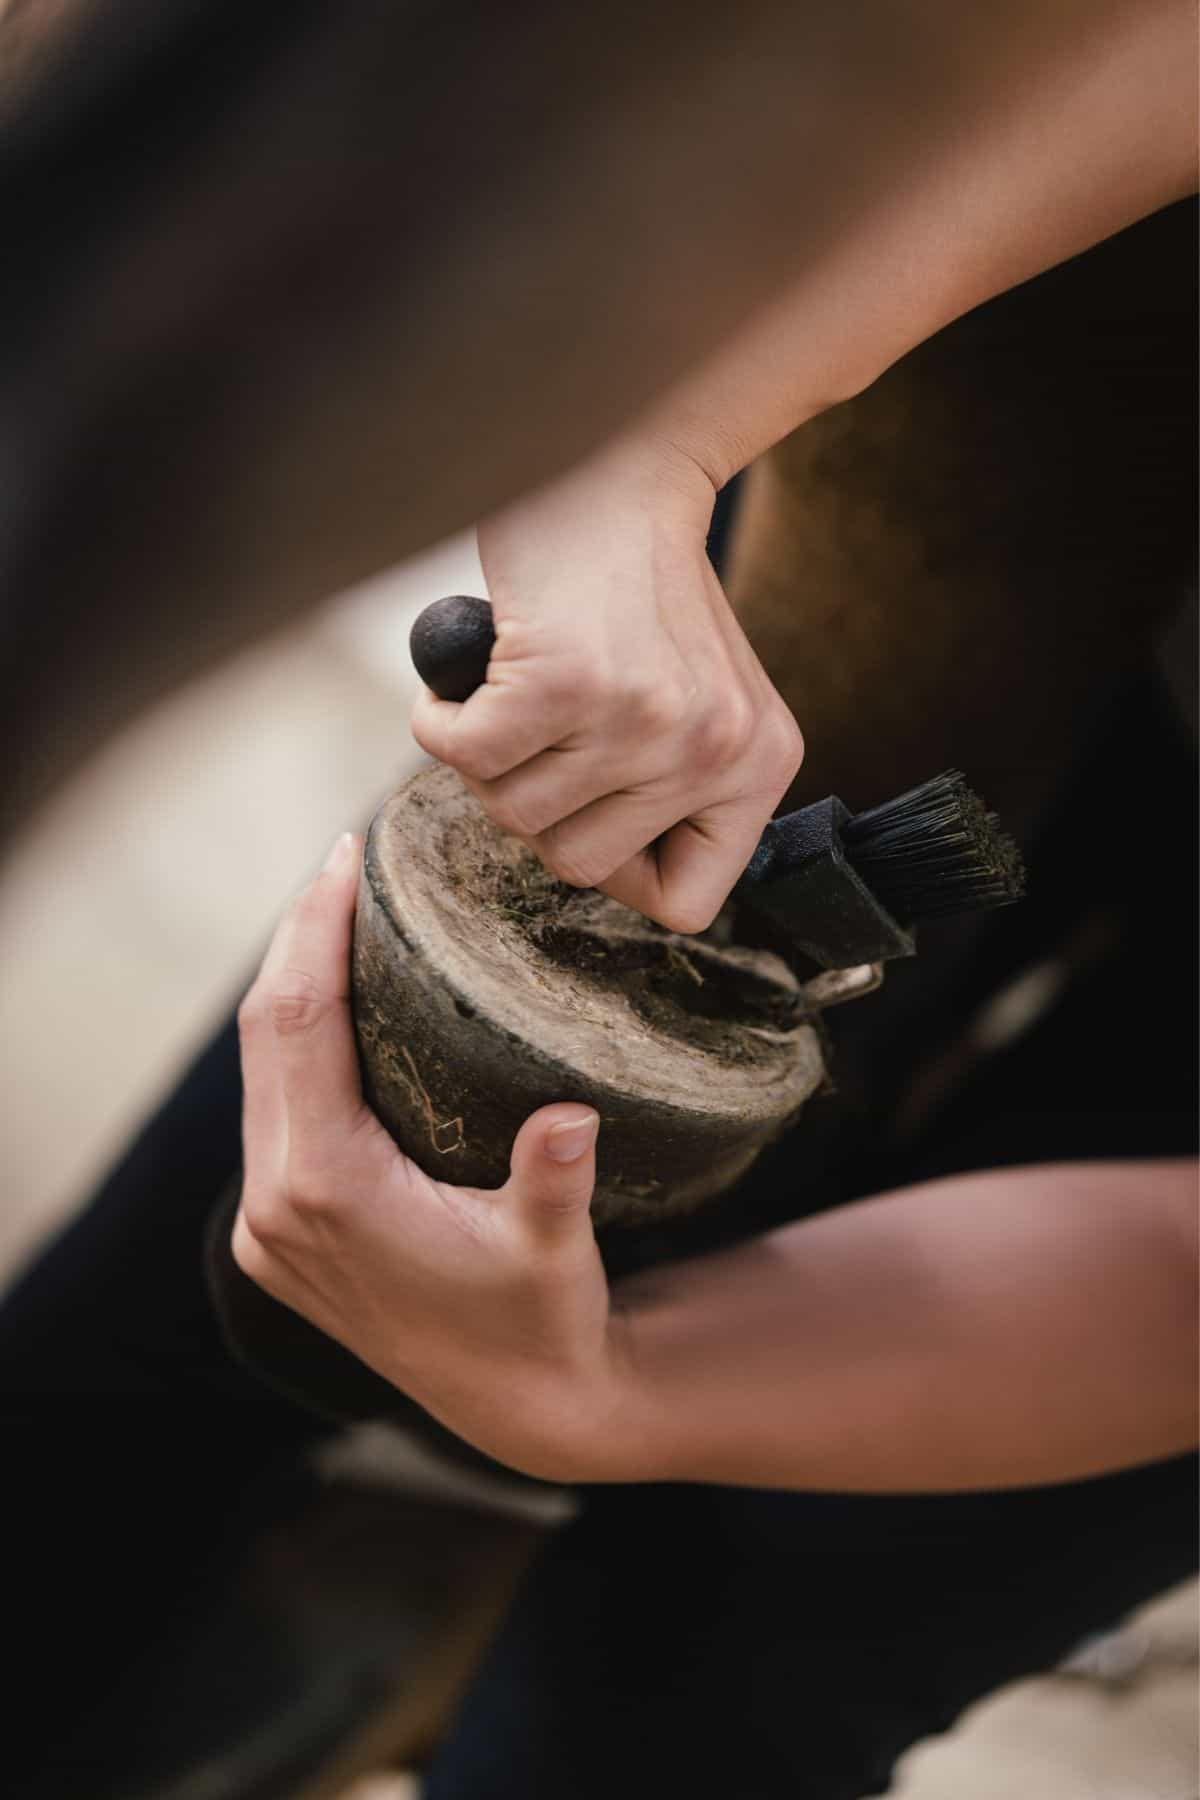 Scraping gunk out of hoof on horse